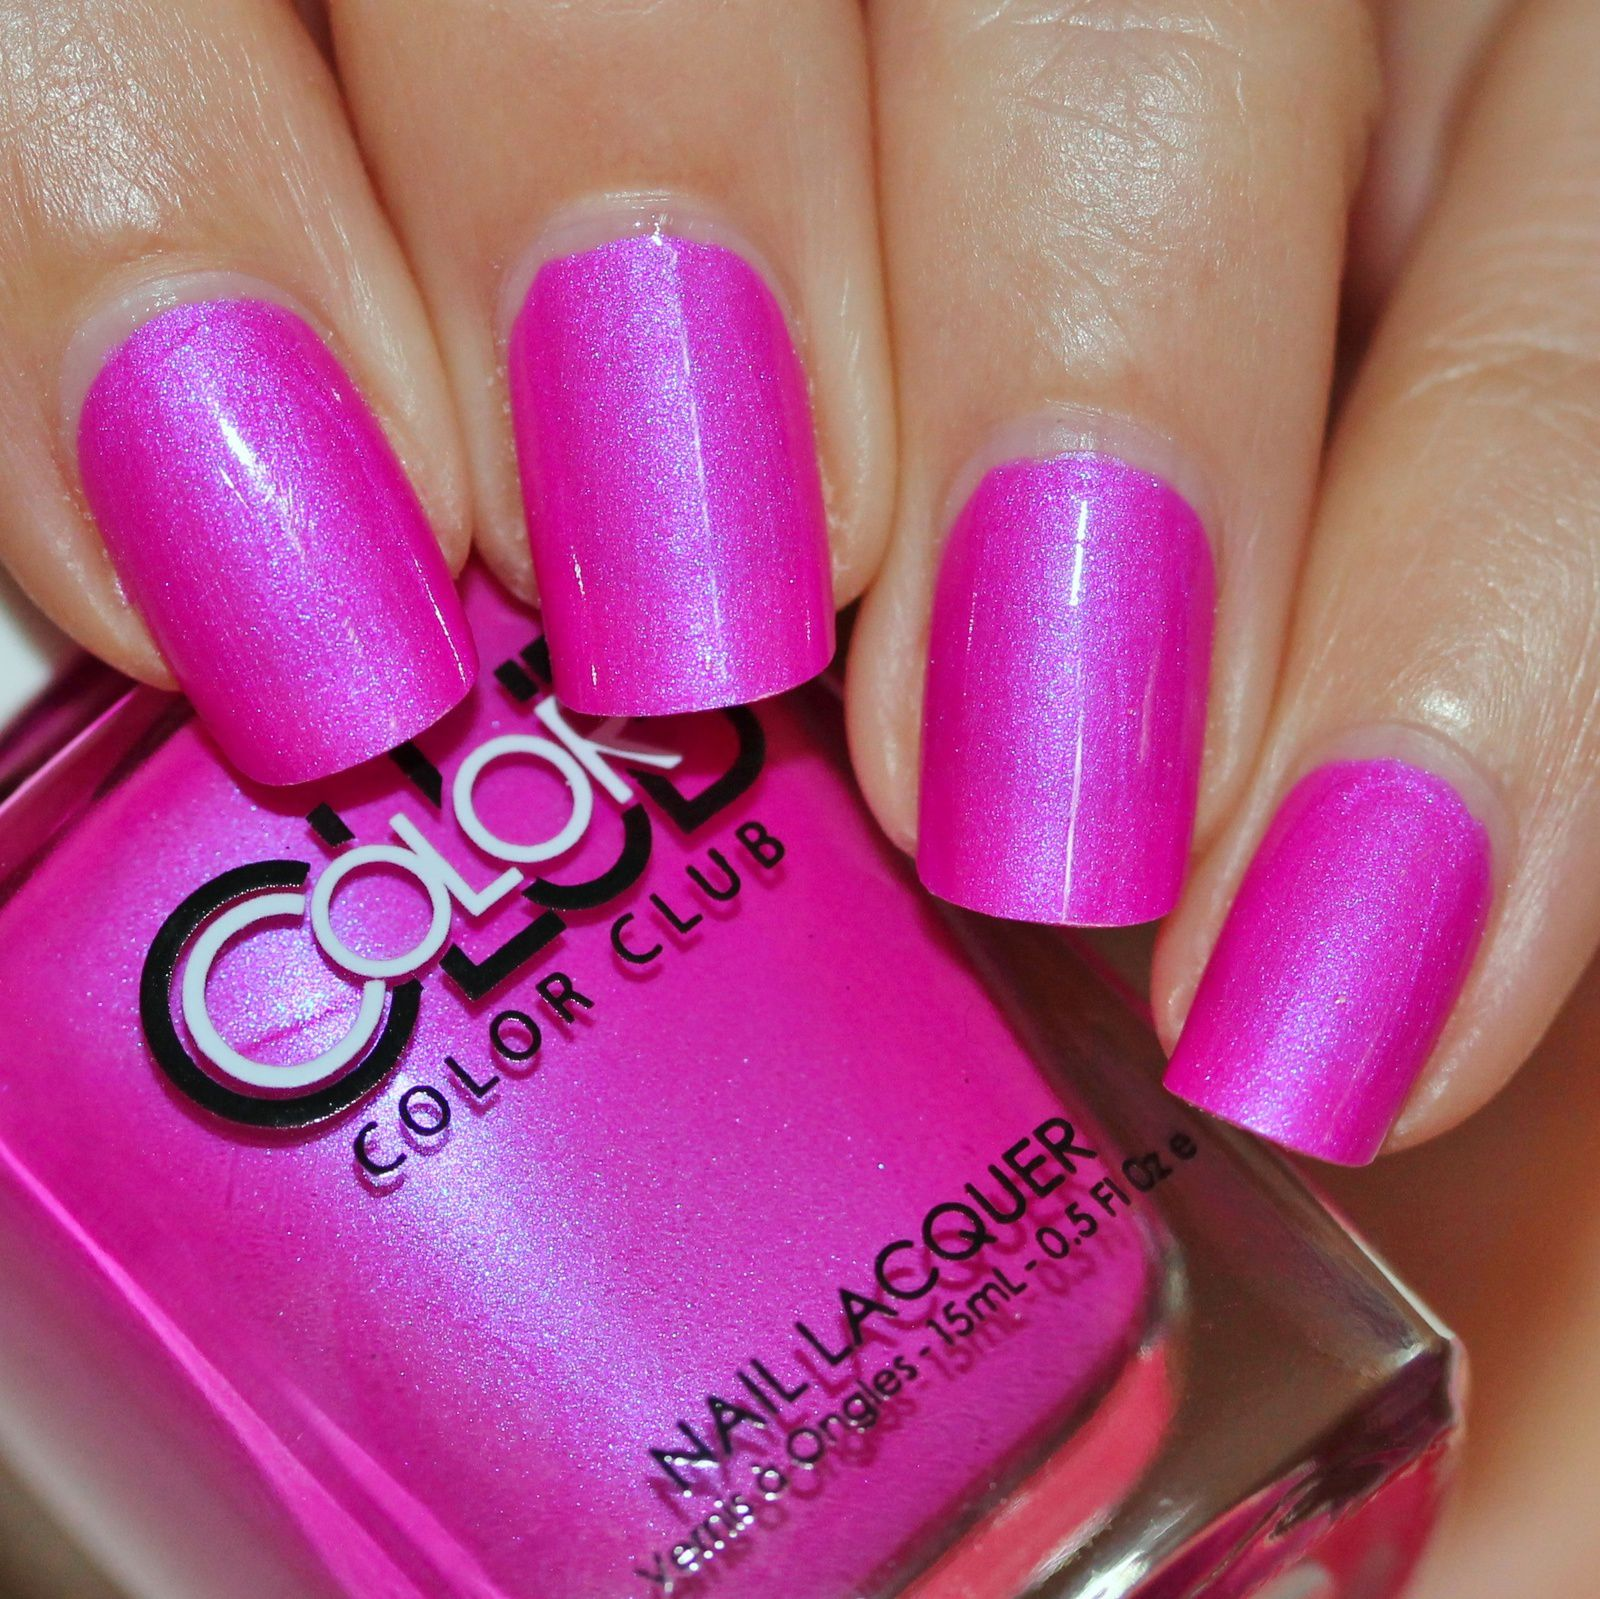 Duri Rejuvacote / Color Club Right On / HK Girl Top Coat